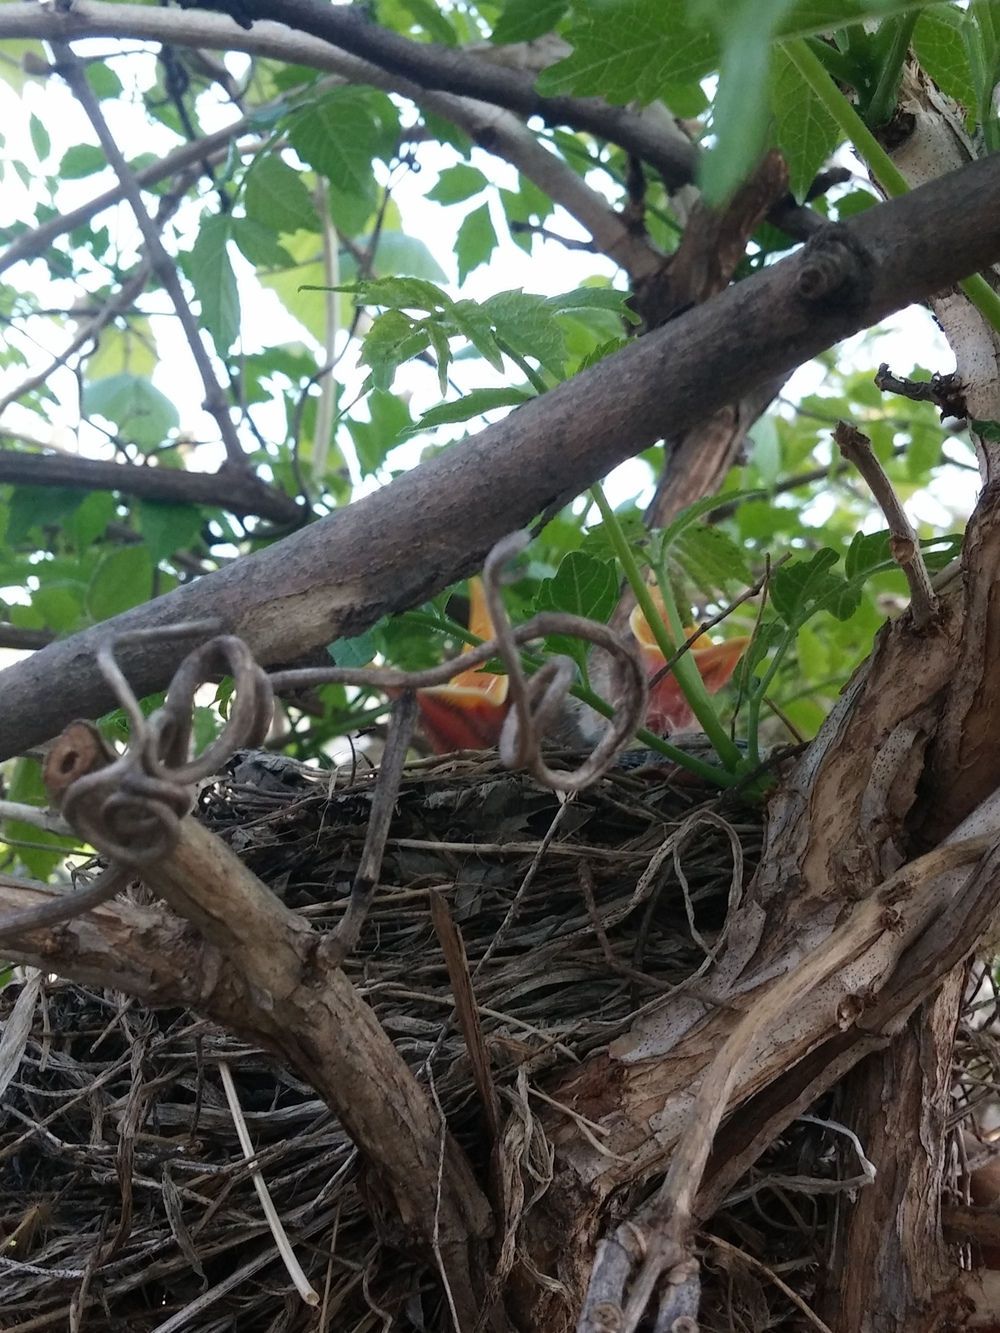 Baby robins! Eric pointed these guys out to me on a fence near our house.